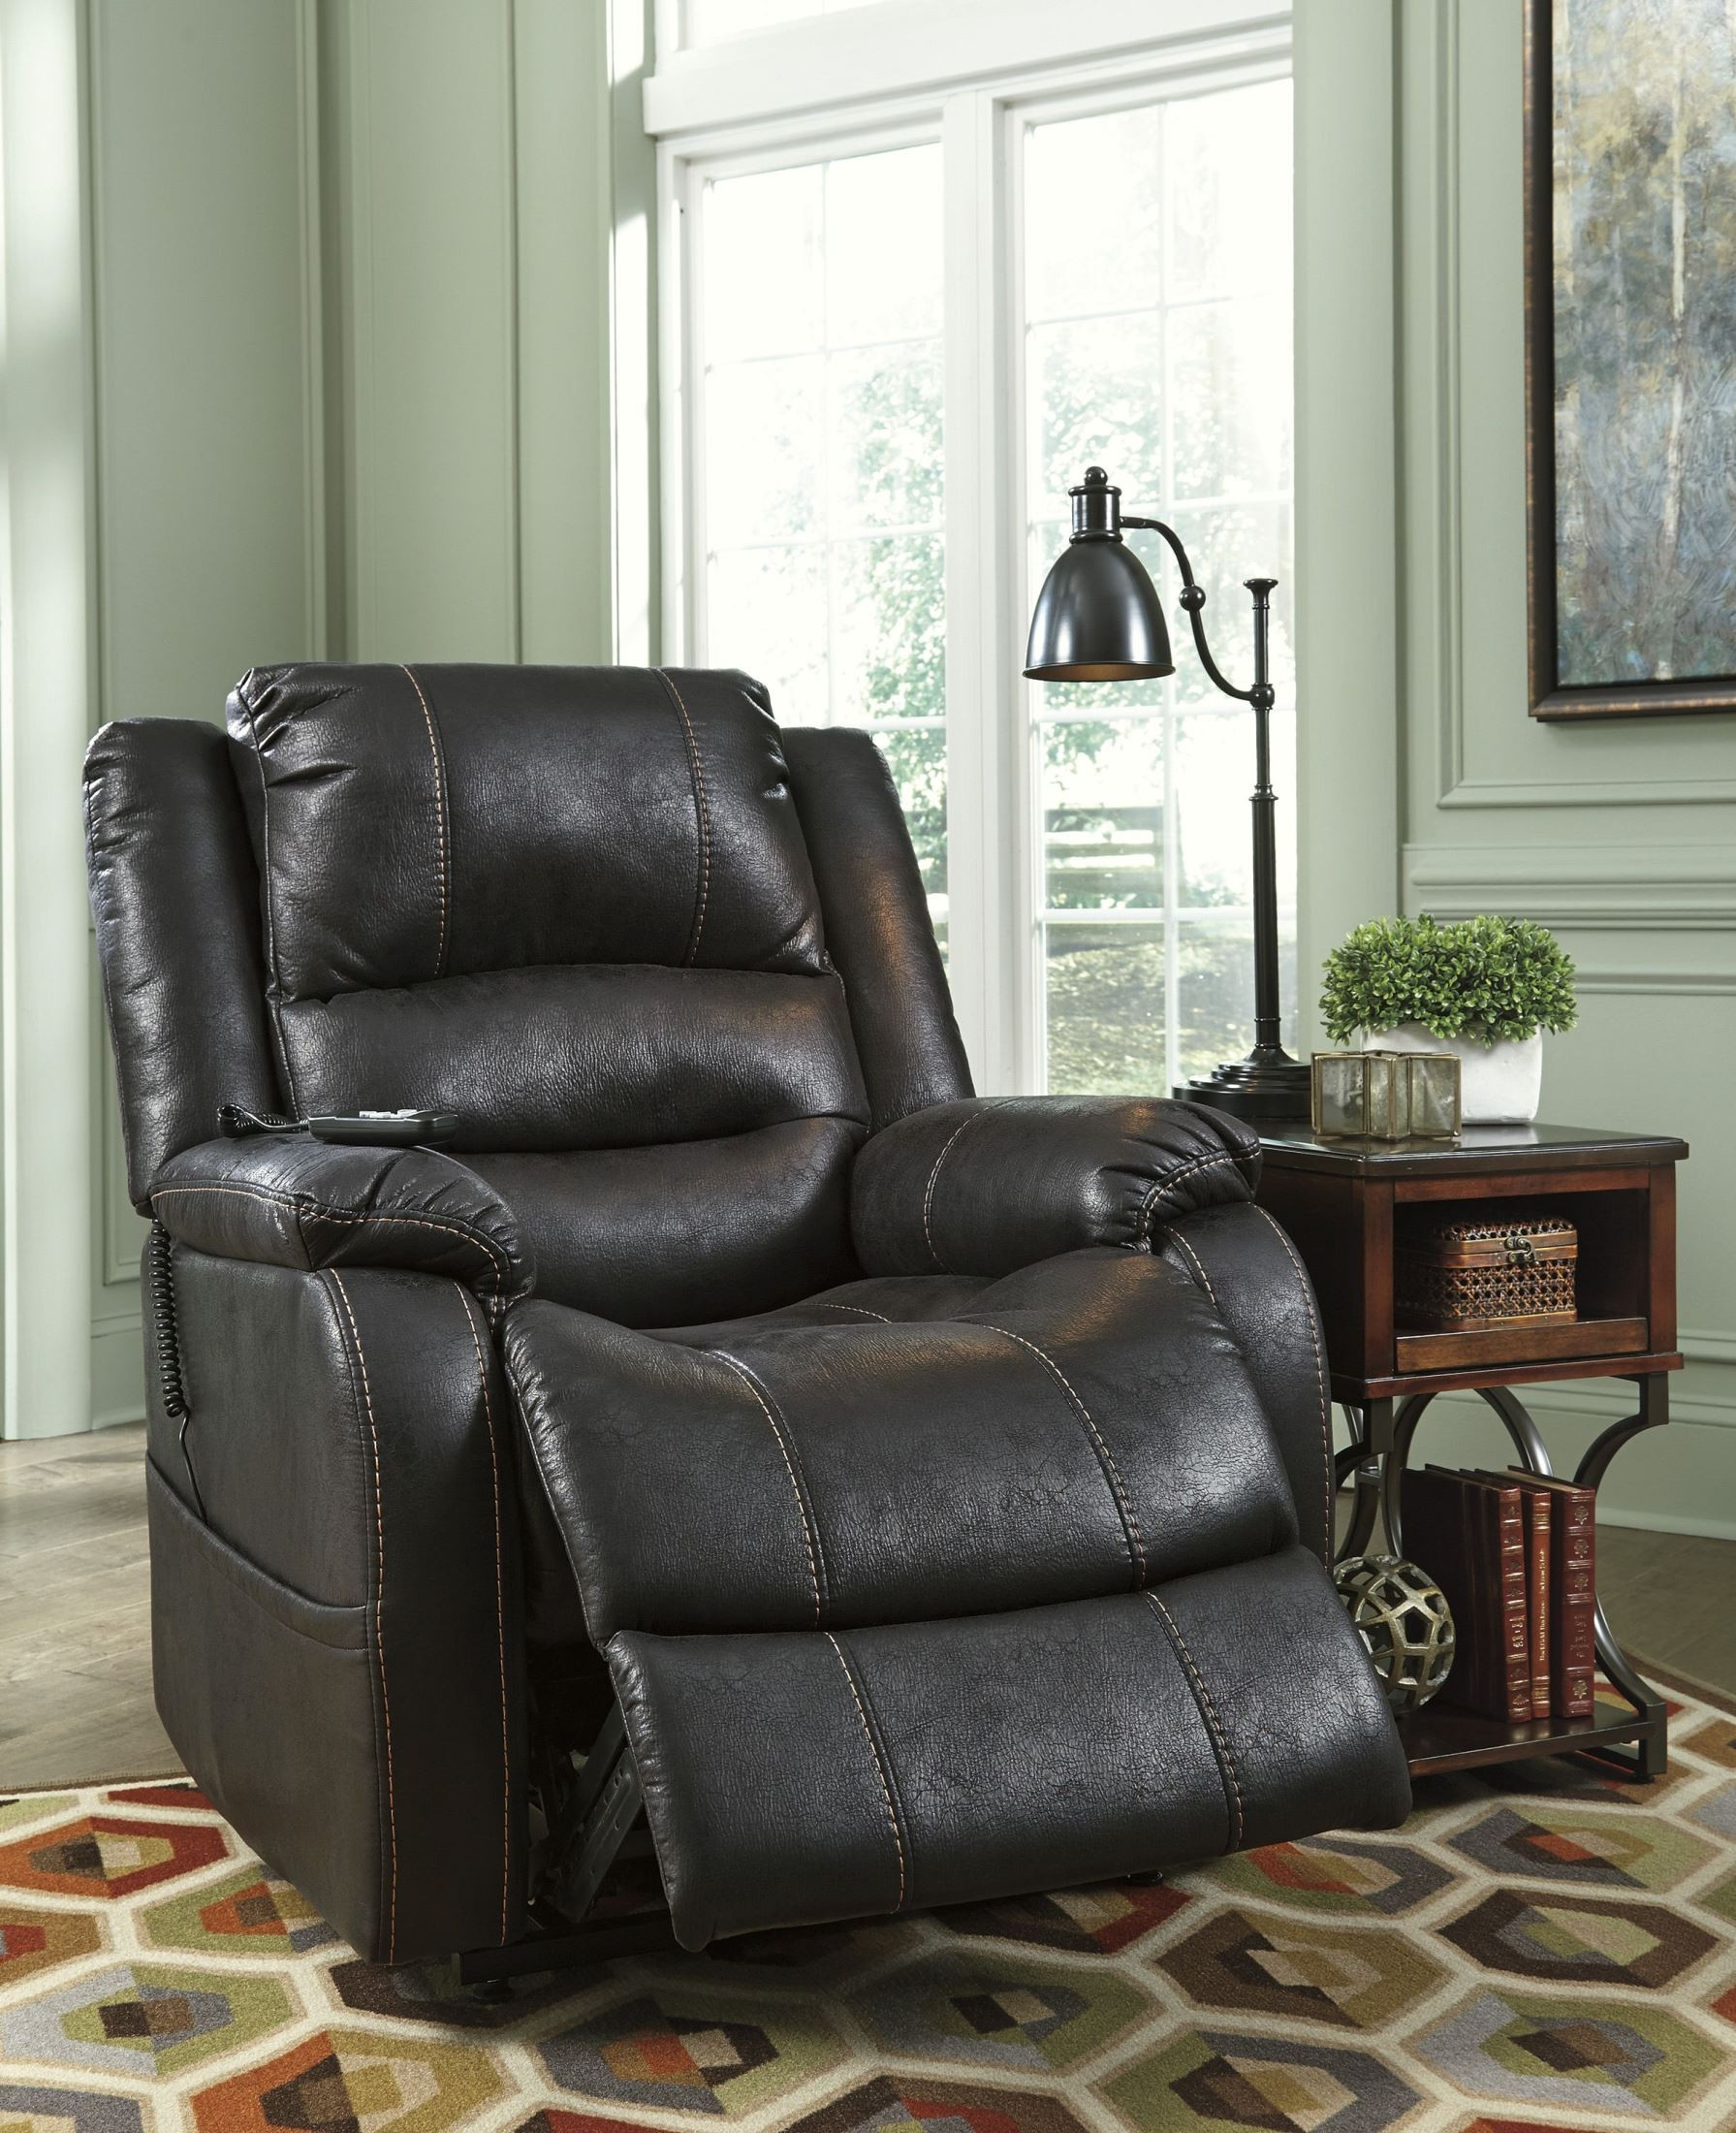 Yandel Black Power Lift Recliner from Ashley · 829455 · 829456 · 829457 : leather power lift recliner - islam-shia.org